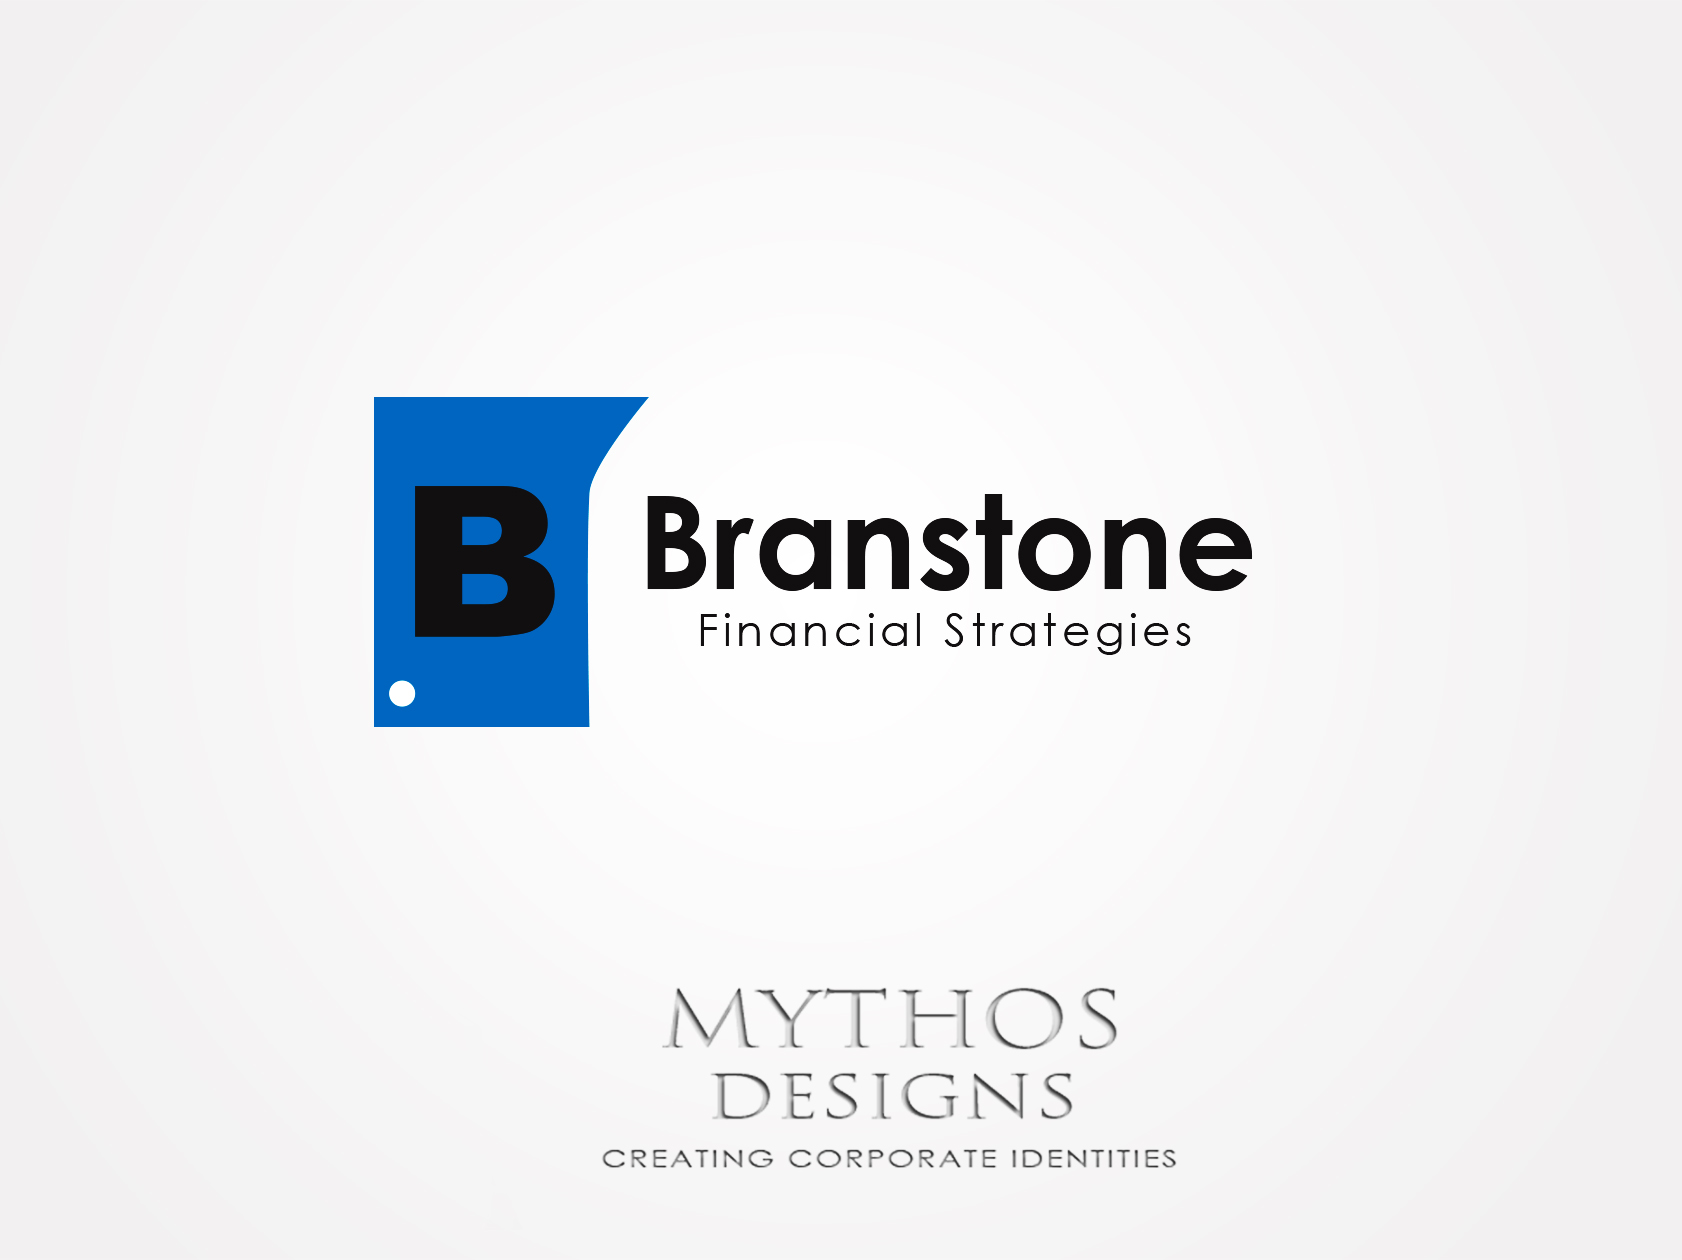 Logo Design by Mythos Designs - Entry No. 3 in the Logo Design Contest Inspiring Logo Design for Branstone Financial Strategies.